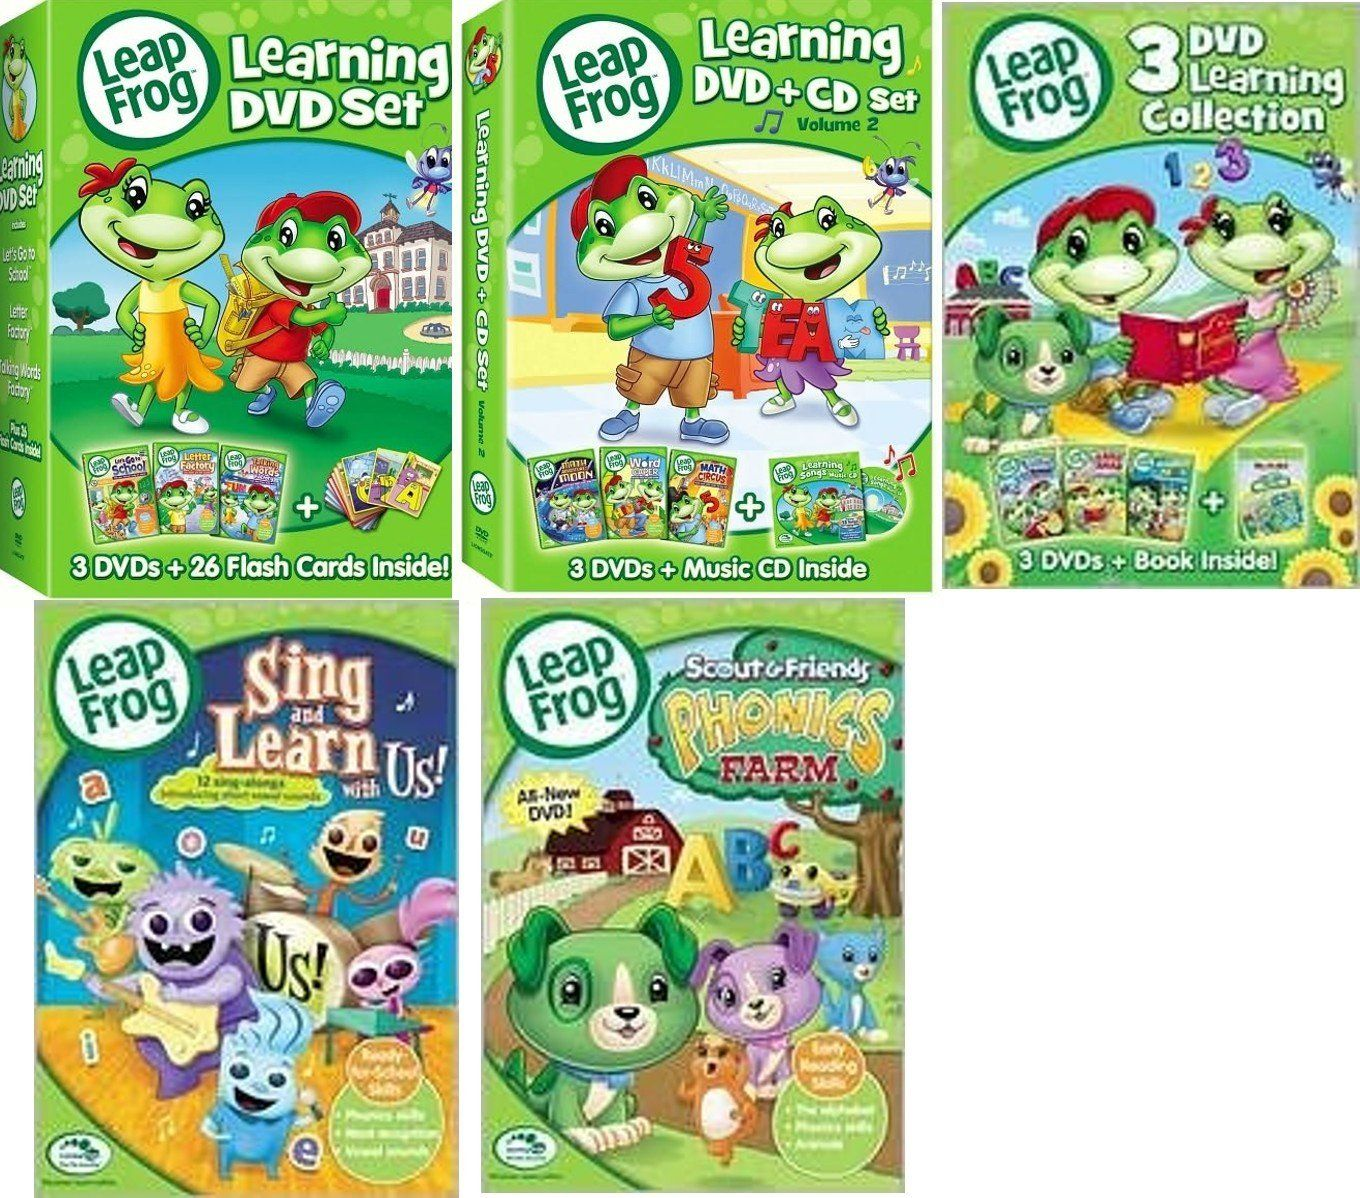 Amazoncom leapfrog 11 dvds plus cd flash cards and book for Leapfrog three letter words